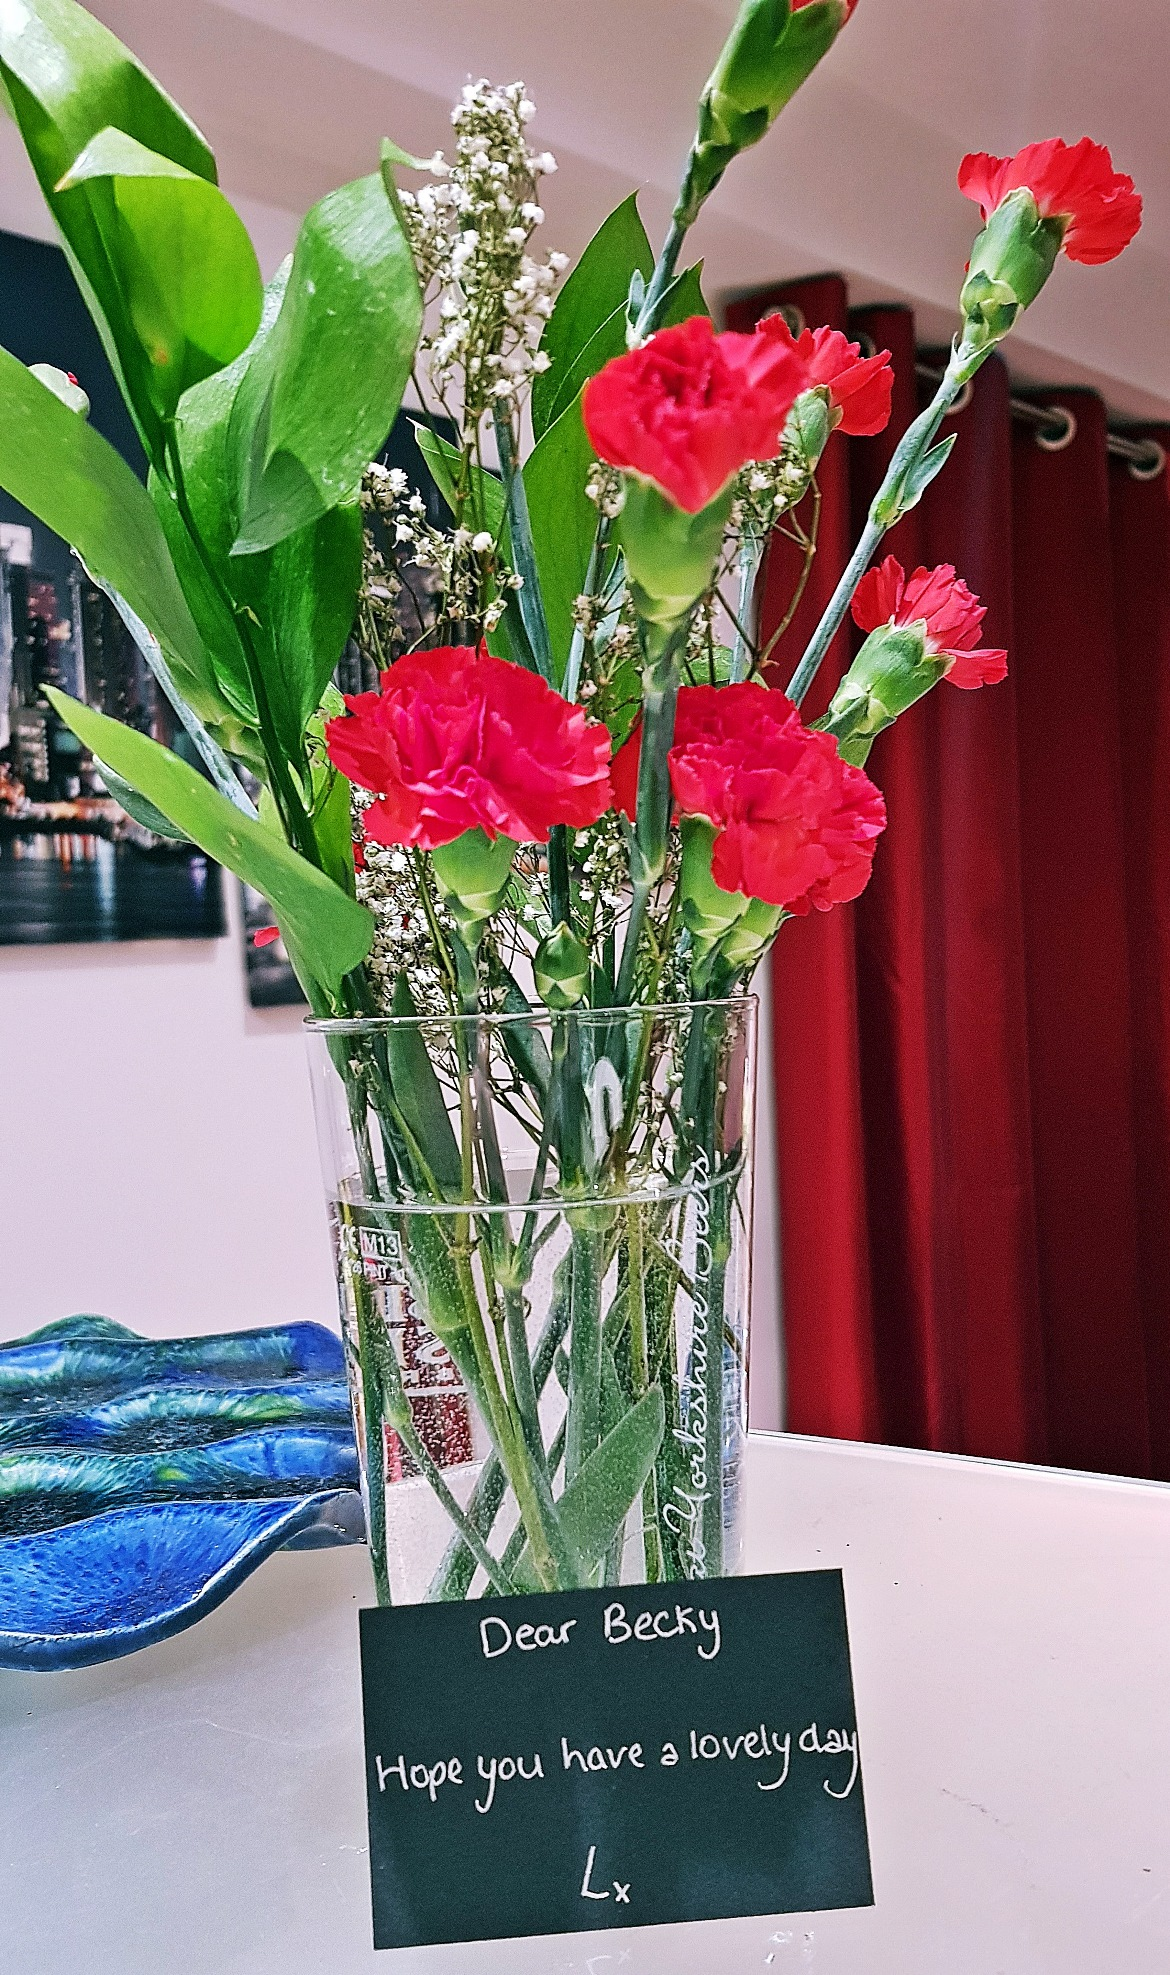 Red carnations from my Relationship Manager Lucy - The Lucky Ones, immersive theatre experience by Riptide Leeds, review by BeckyBecky Blogs